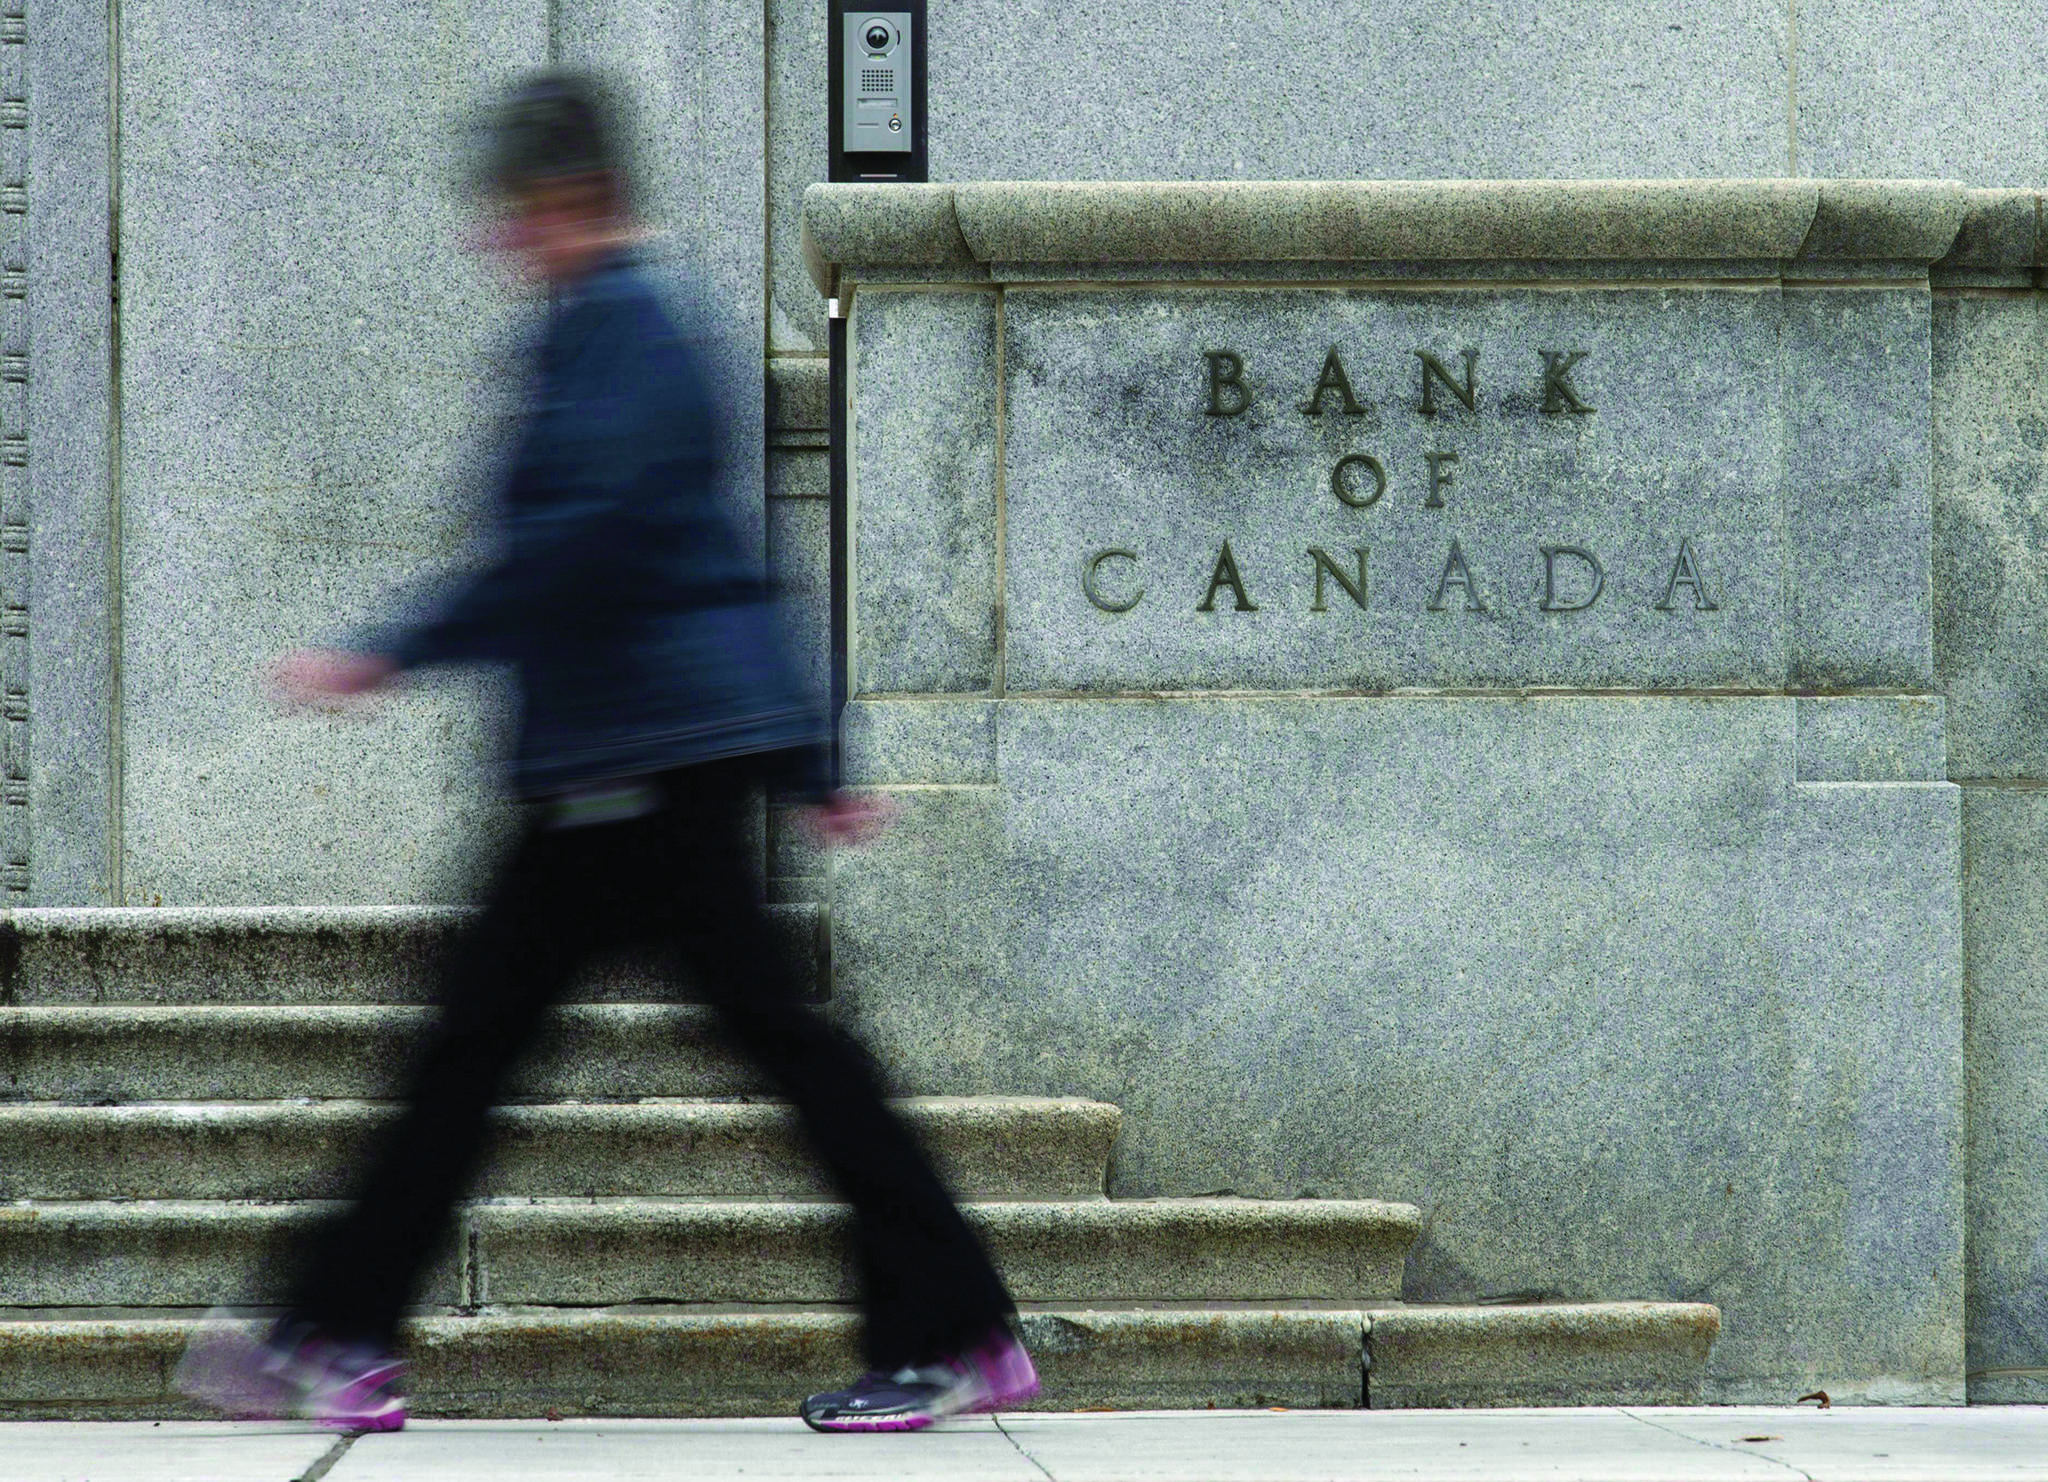 A woman walks past the Bank of Canada Wednesday September 6, 2017 in Ottawa. THE CANADIAN PRESS/Adrian Wyld